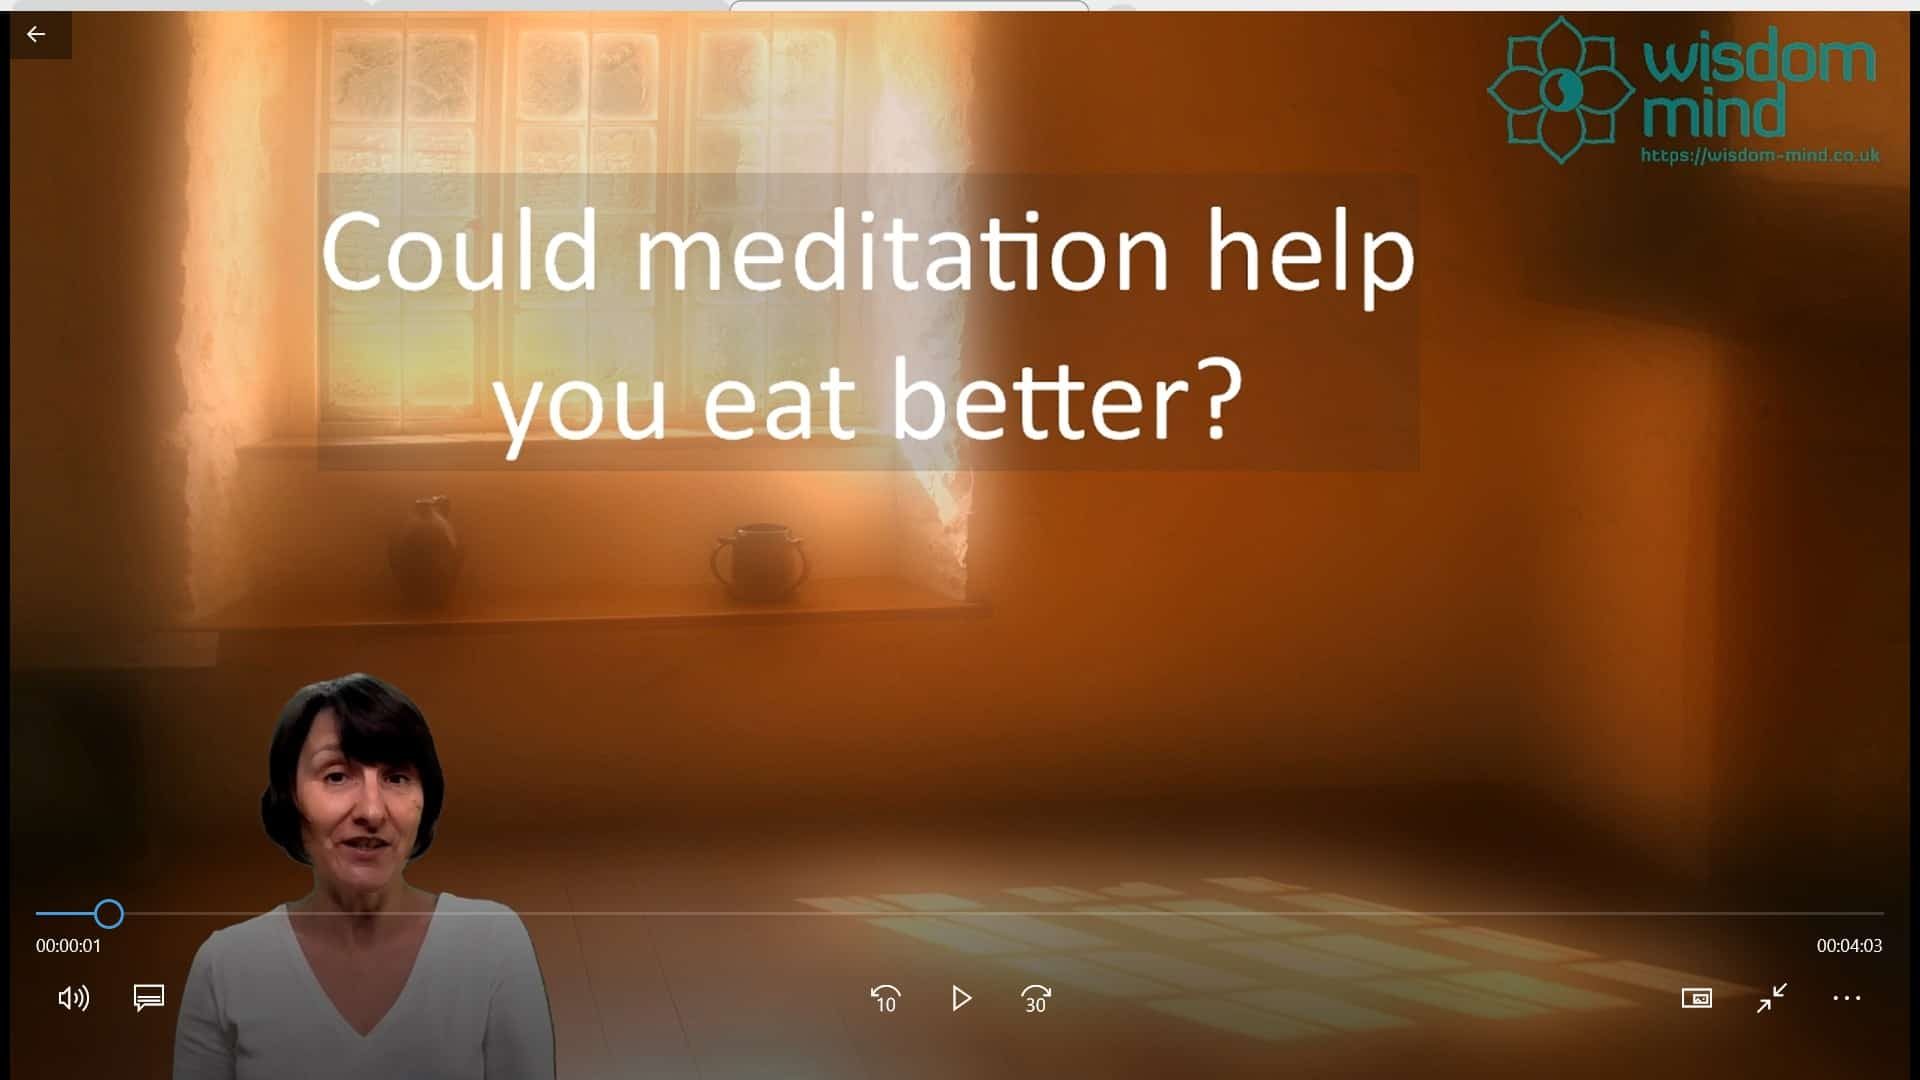 Could meditation help you eat better?